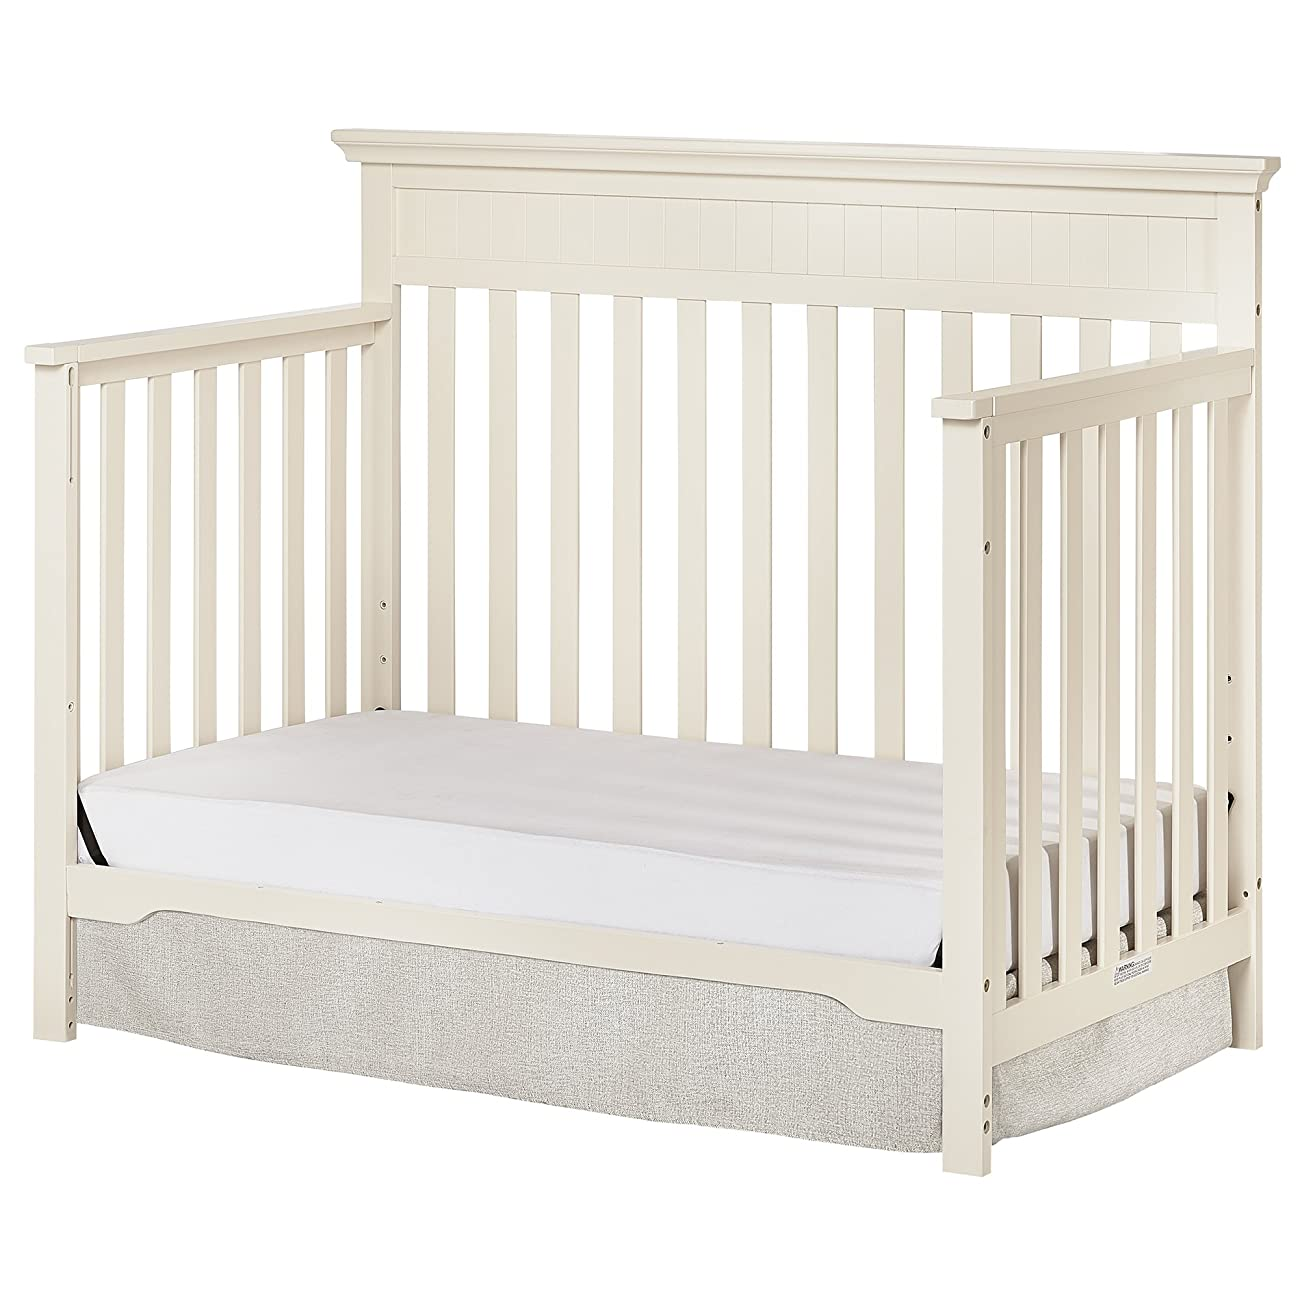 Dream On Me Chesapeake 5-In-1 Convertible Crib, French White 2